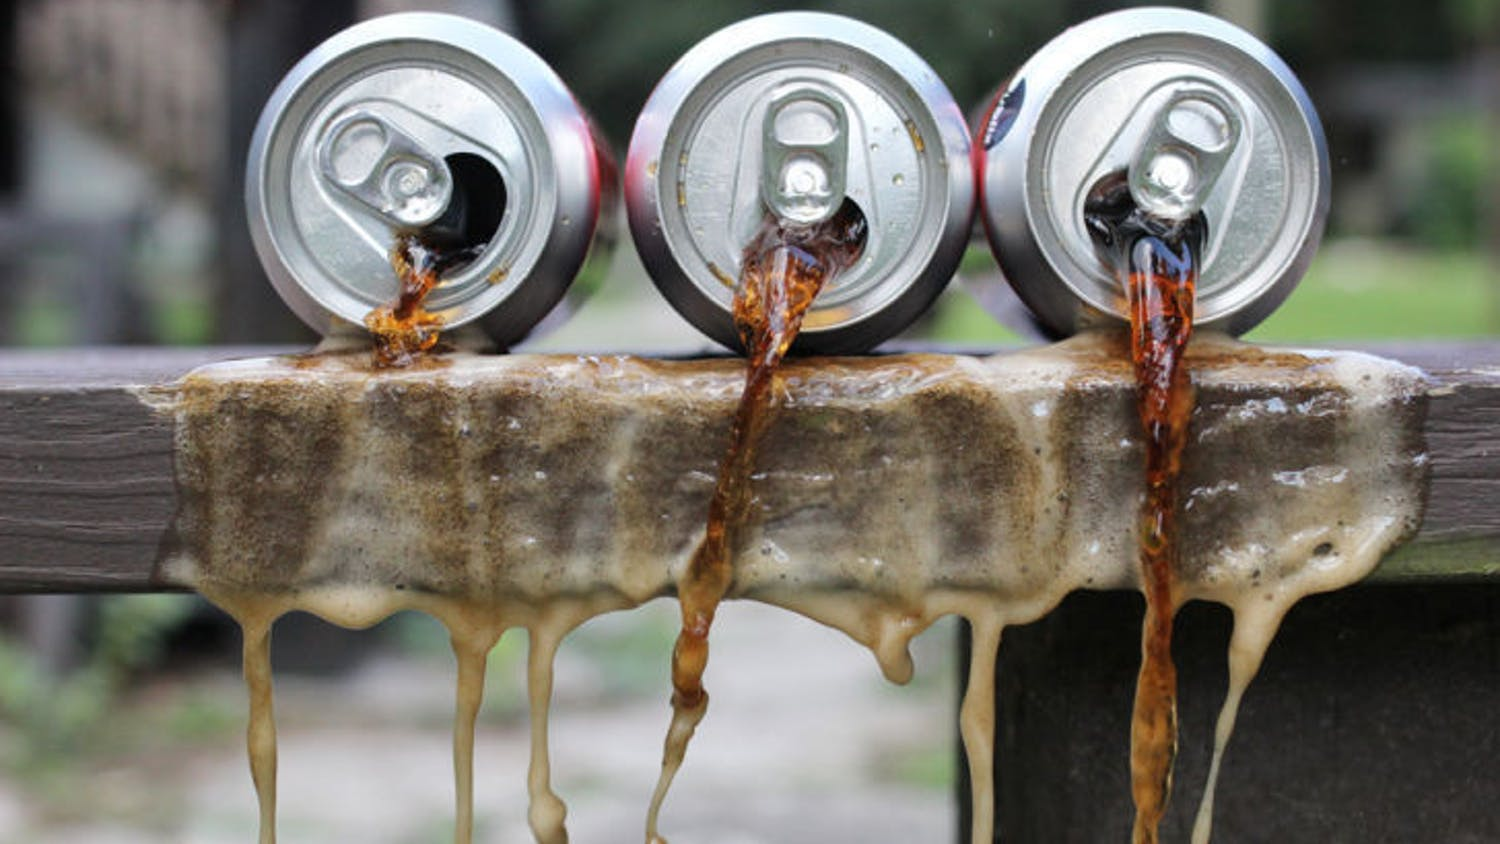 A set-up photo shows soda spilling out of cans. A recently published study suggests that the alertness experienced after drinking sugary beverages is actually more of a placebo effect than the effect of the sugar.